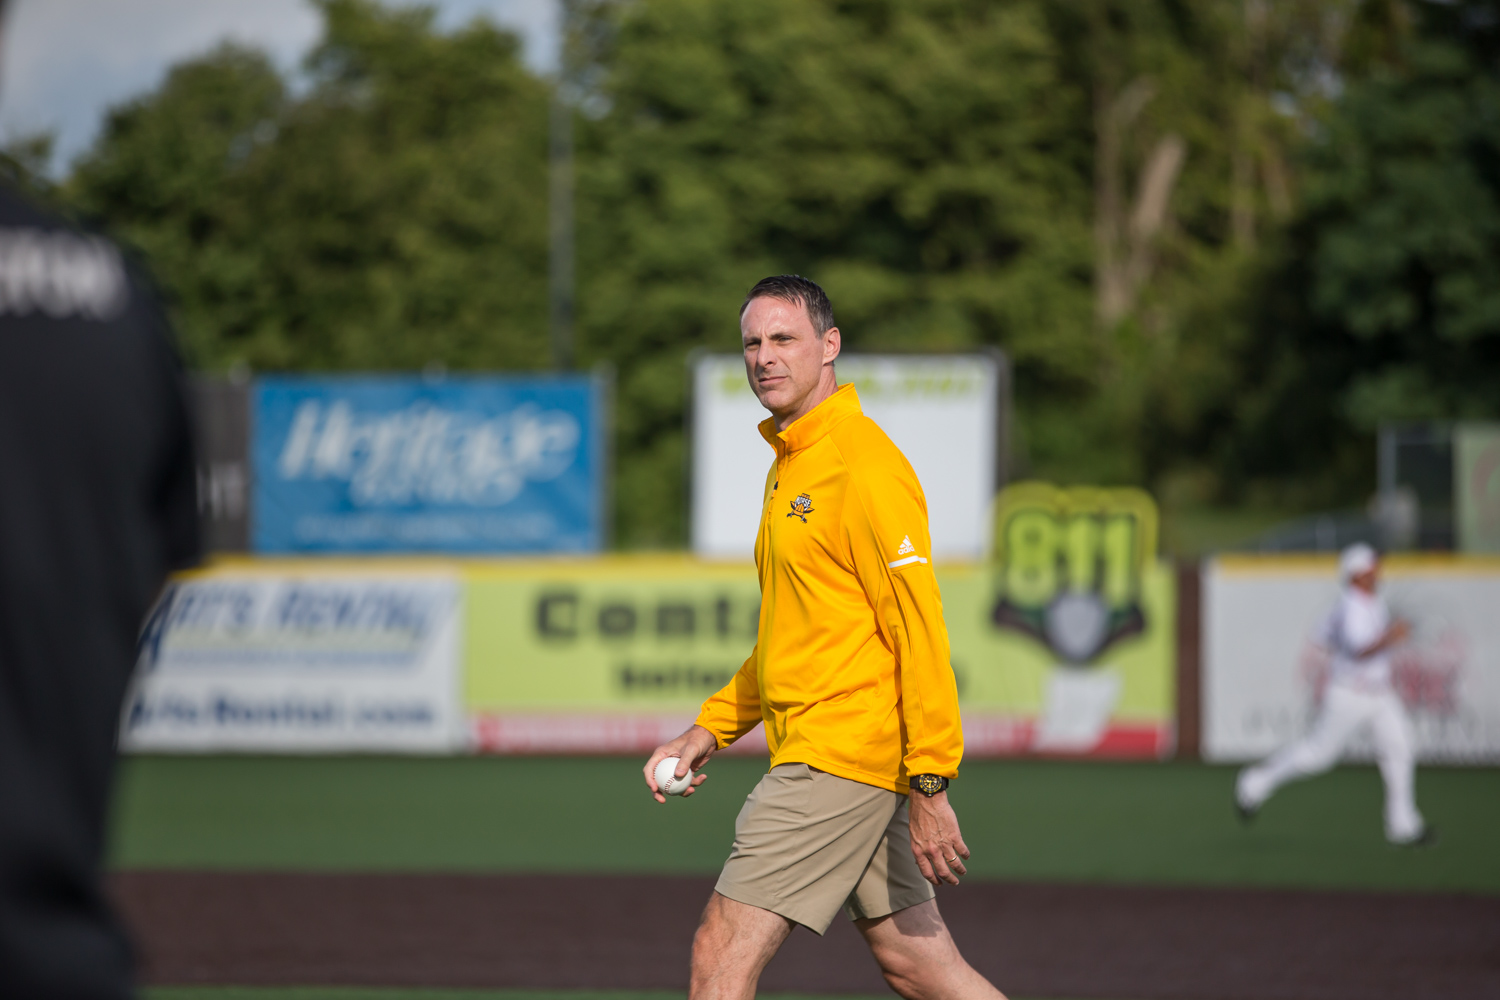 Men%27s+Basketball+Head+Coach+Darrin+Horn+stands+before+making+the+first+pitch+at+the+Florence+Freedom+Baseball+Game+on+NKU+Night%2C